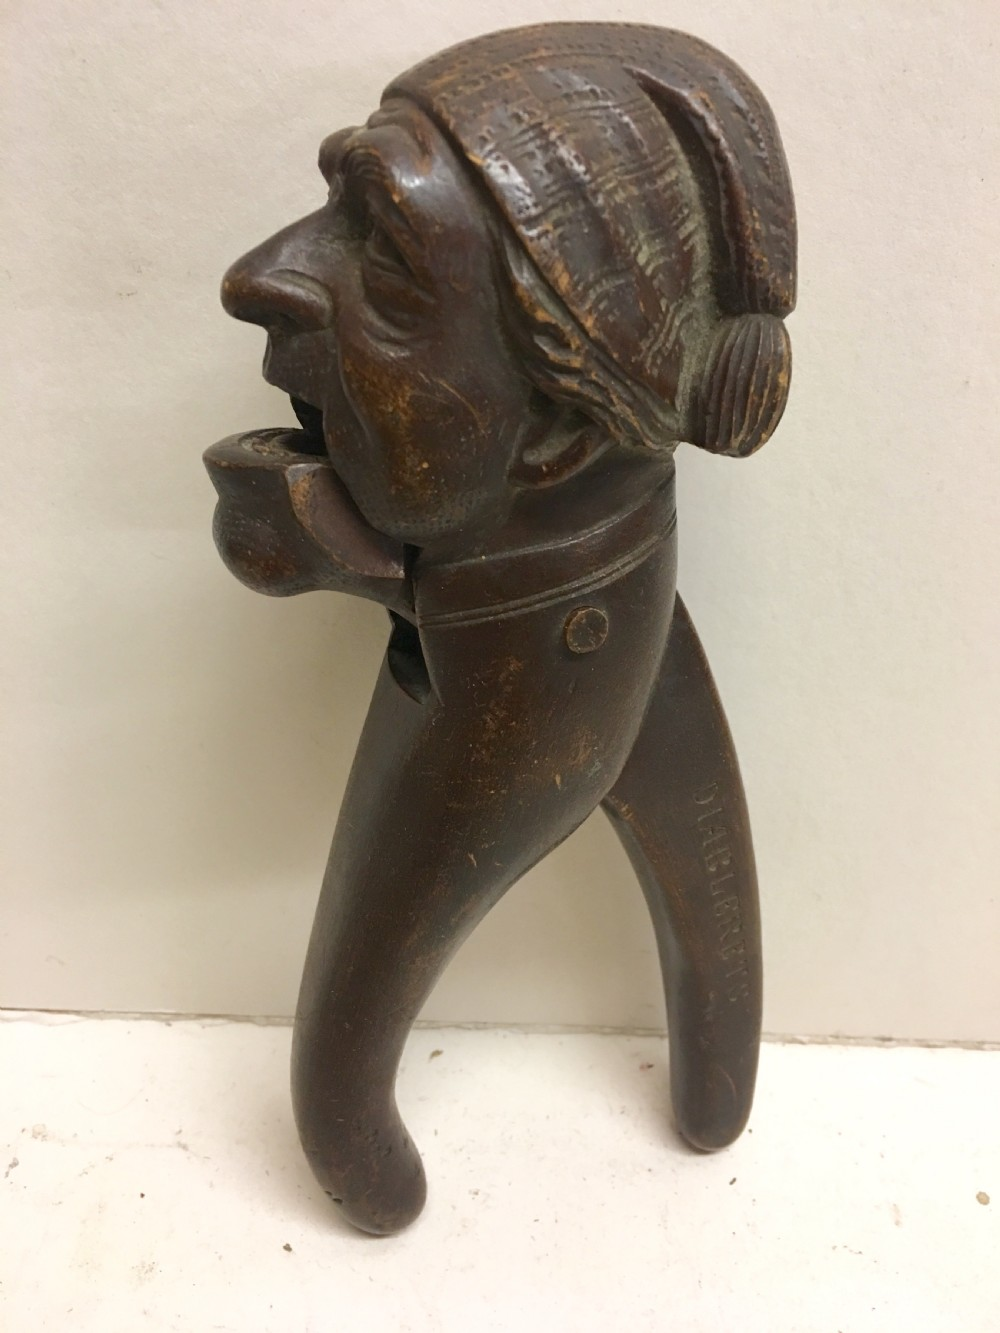 c19th swiss carving of a man modelled as a nut cracker